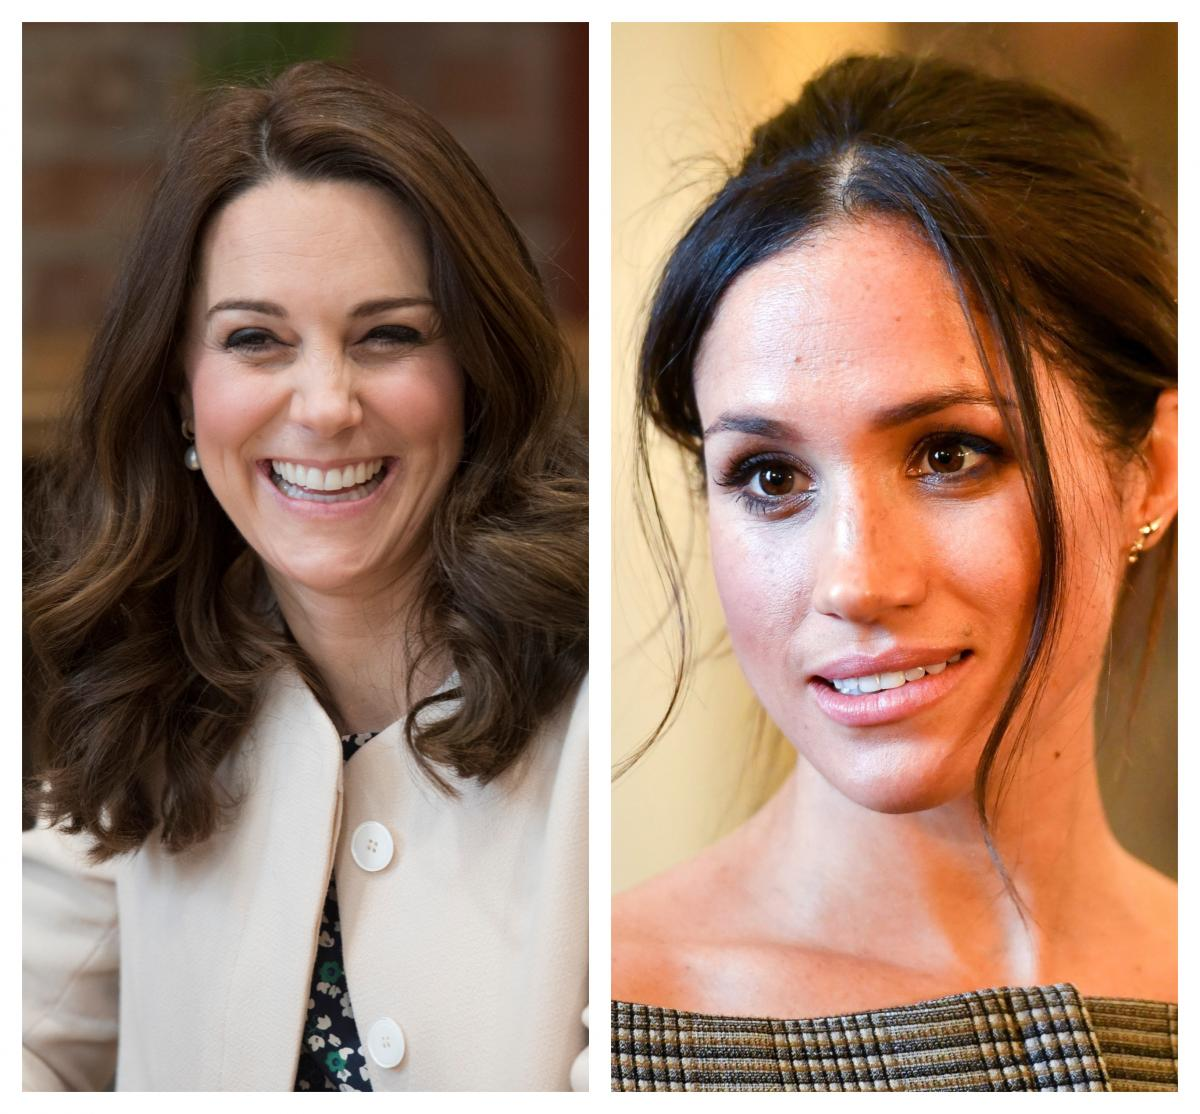 Kate Middleton's Effort To Be Close To Meghan Markle Revisited